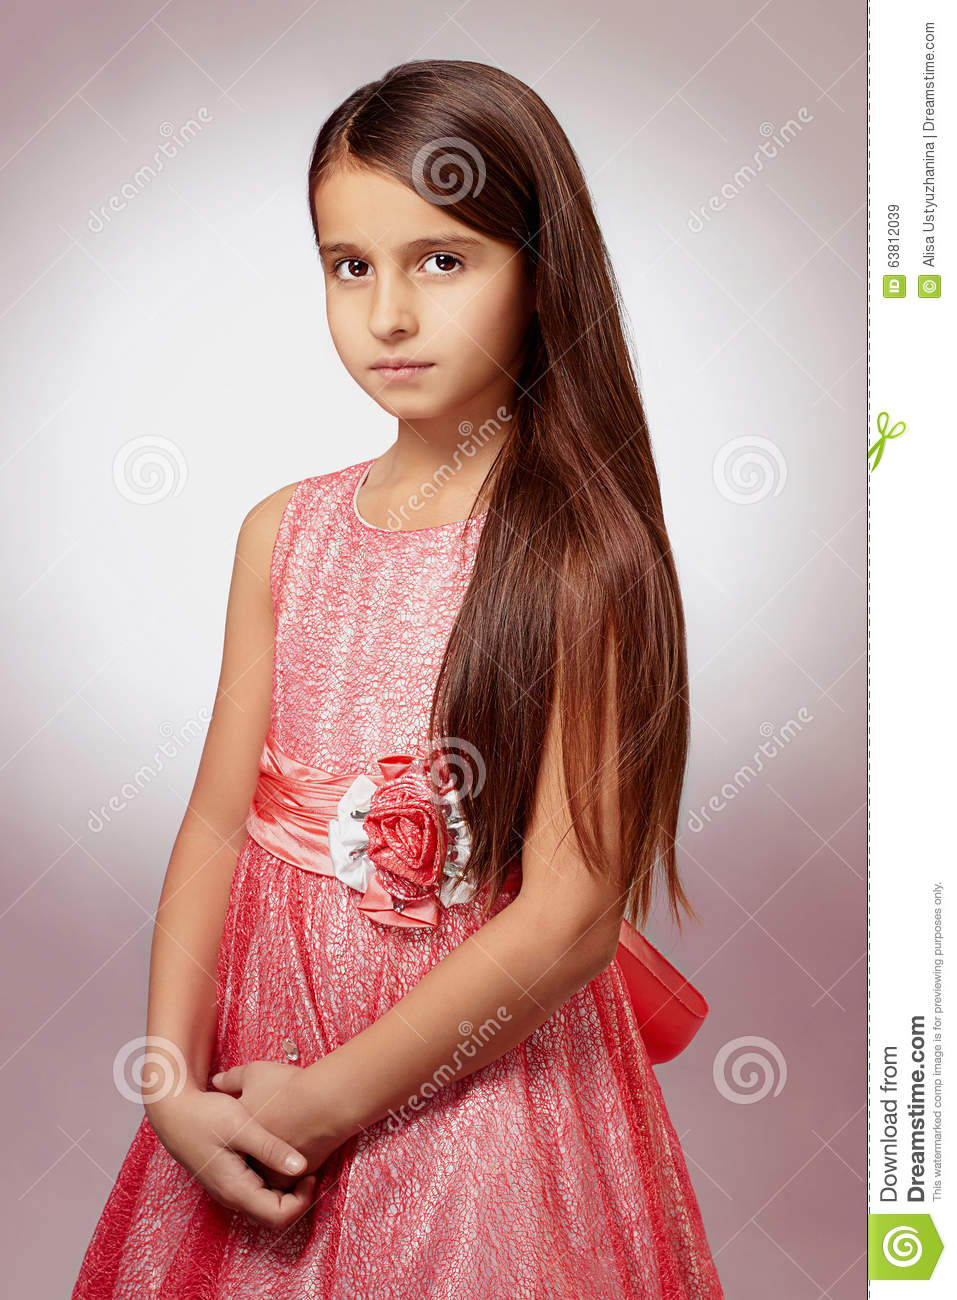 Beautiful Little Girl In Pink Dress Stock Image - Image Of Dress, Little 63812039-7685